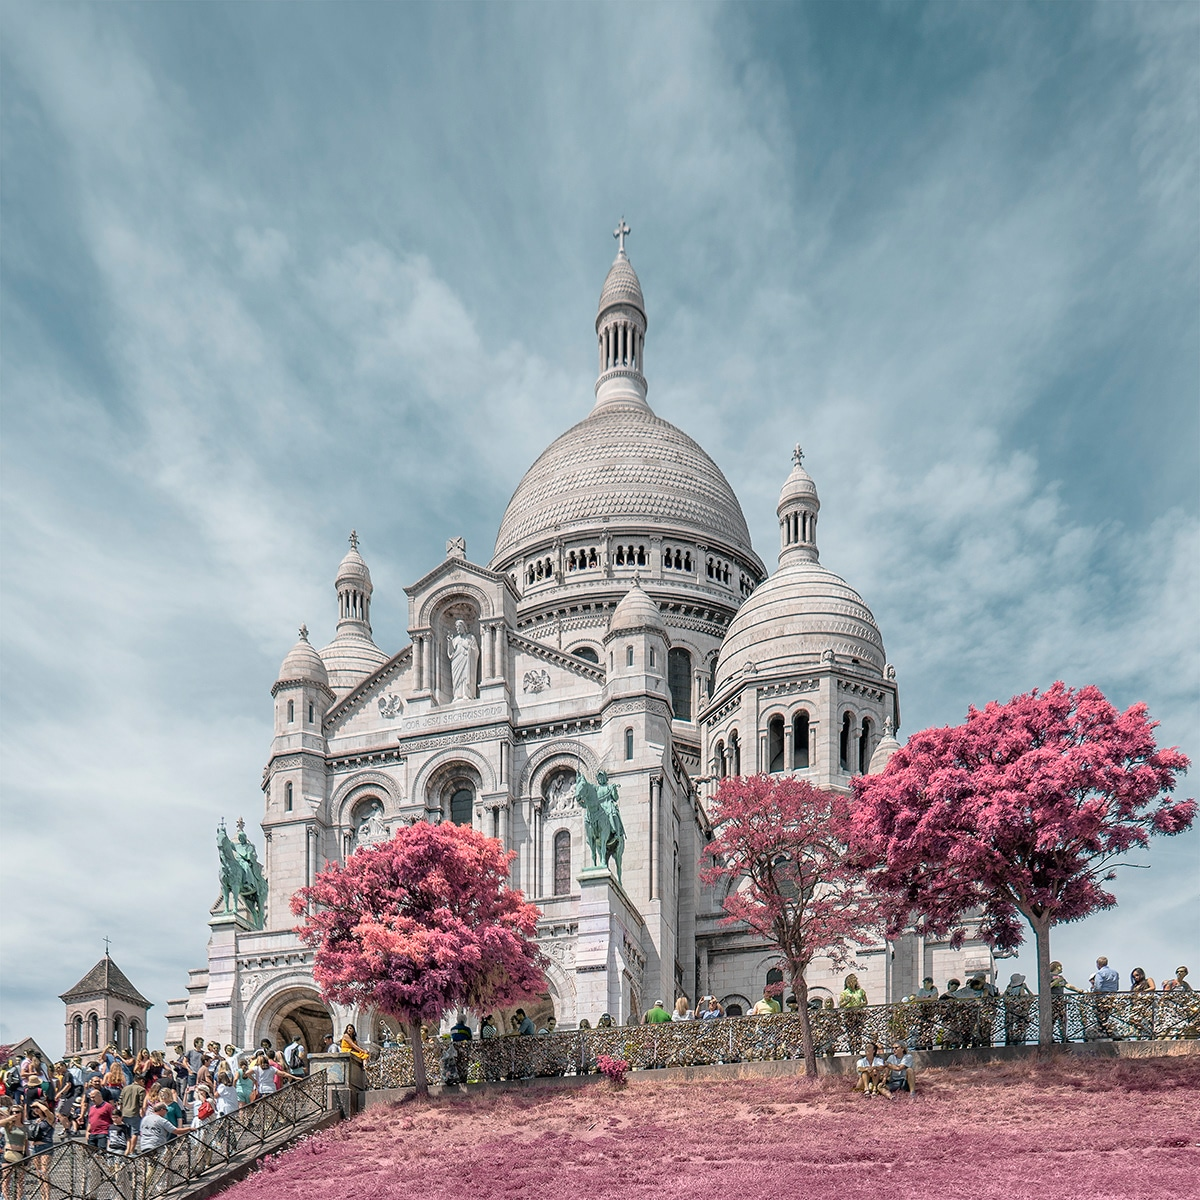 Infrared Photo of Sacre Coeur